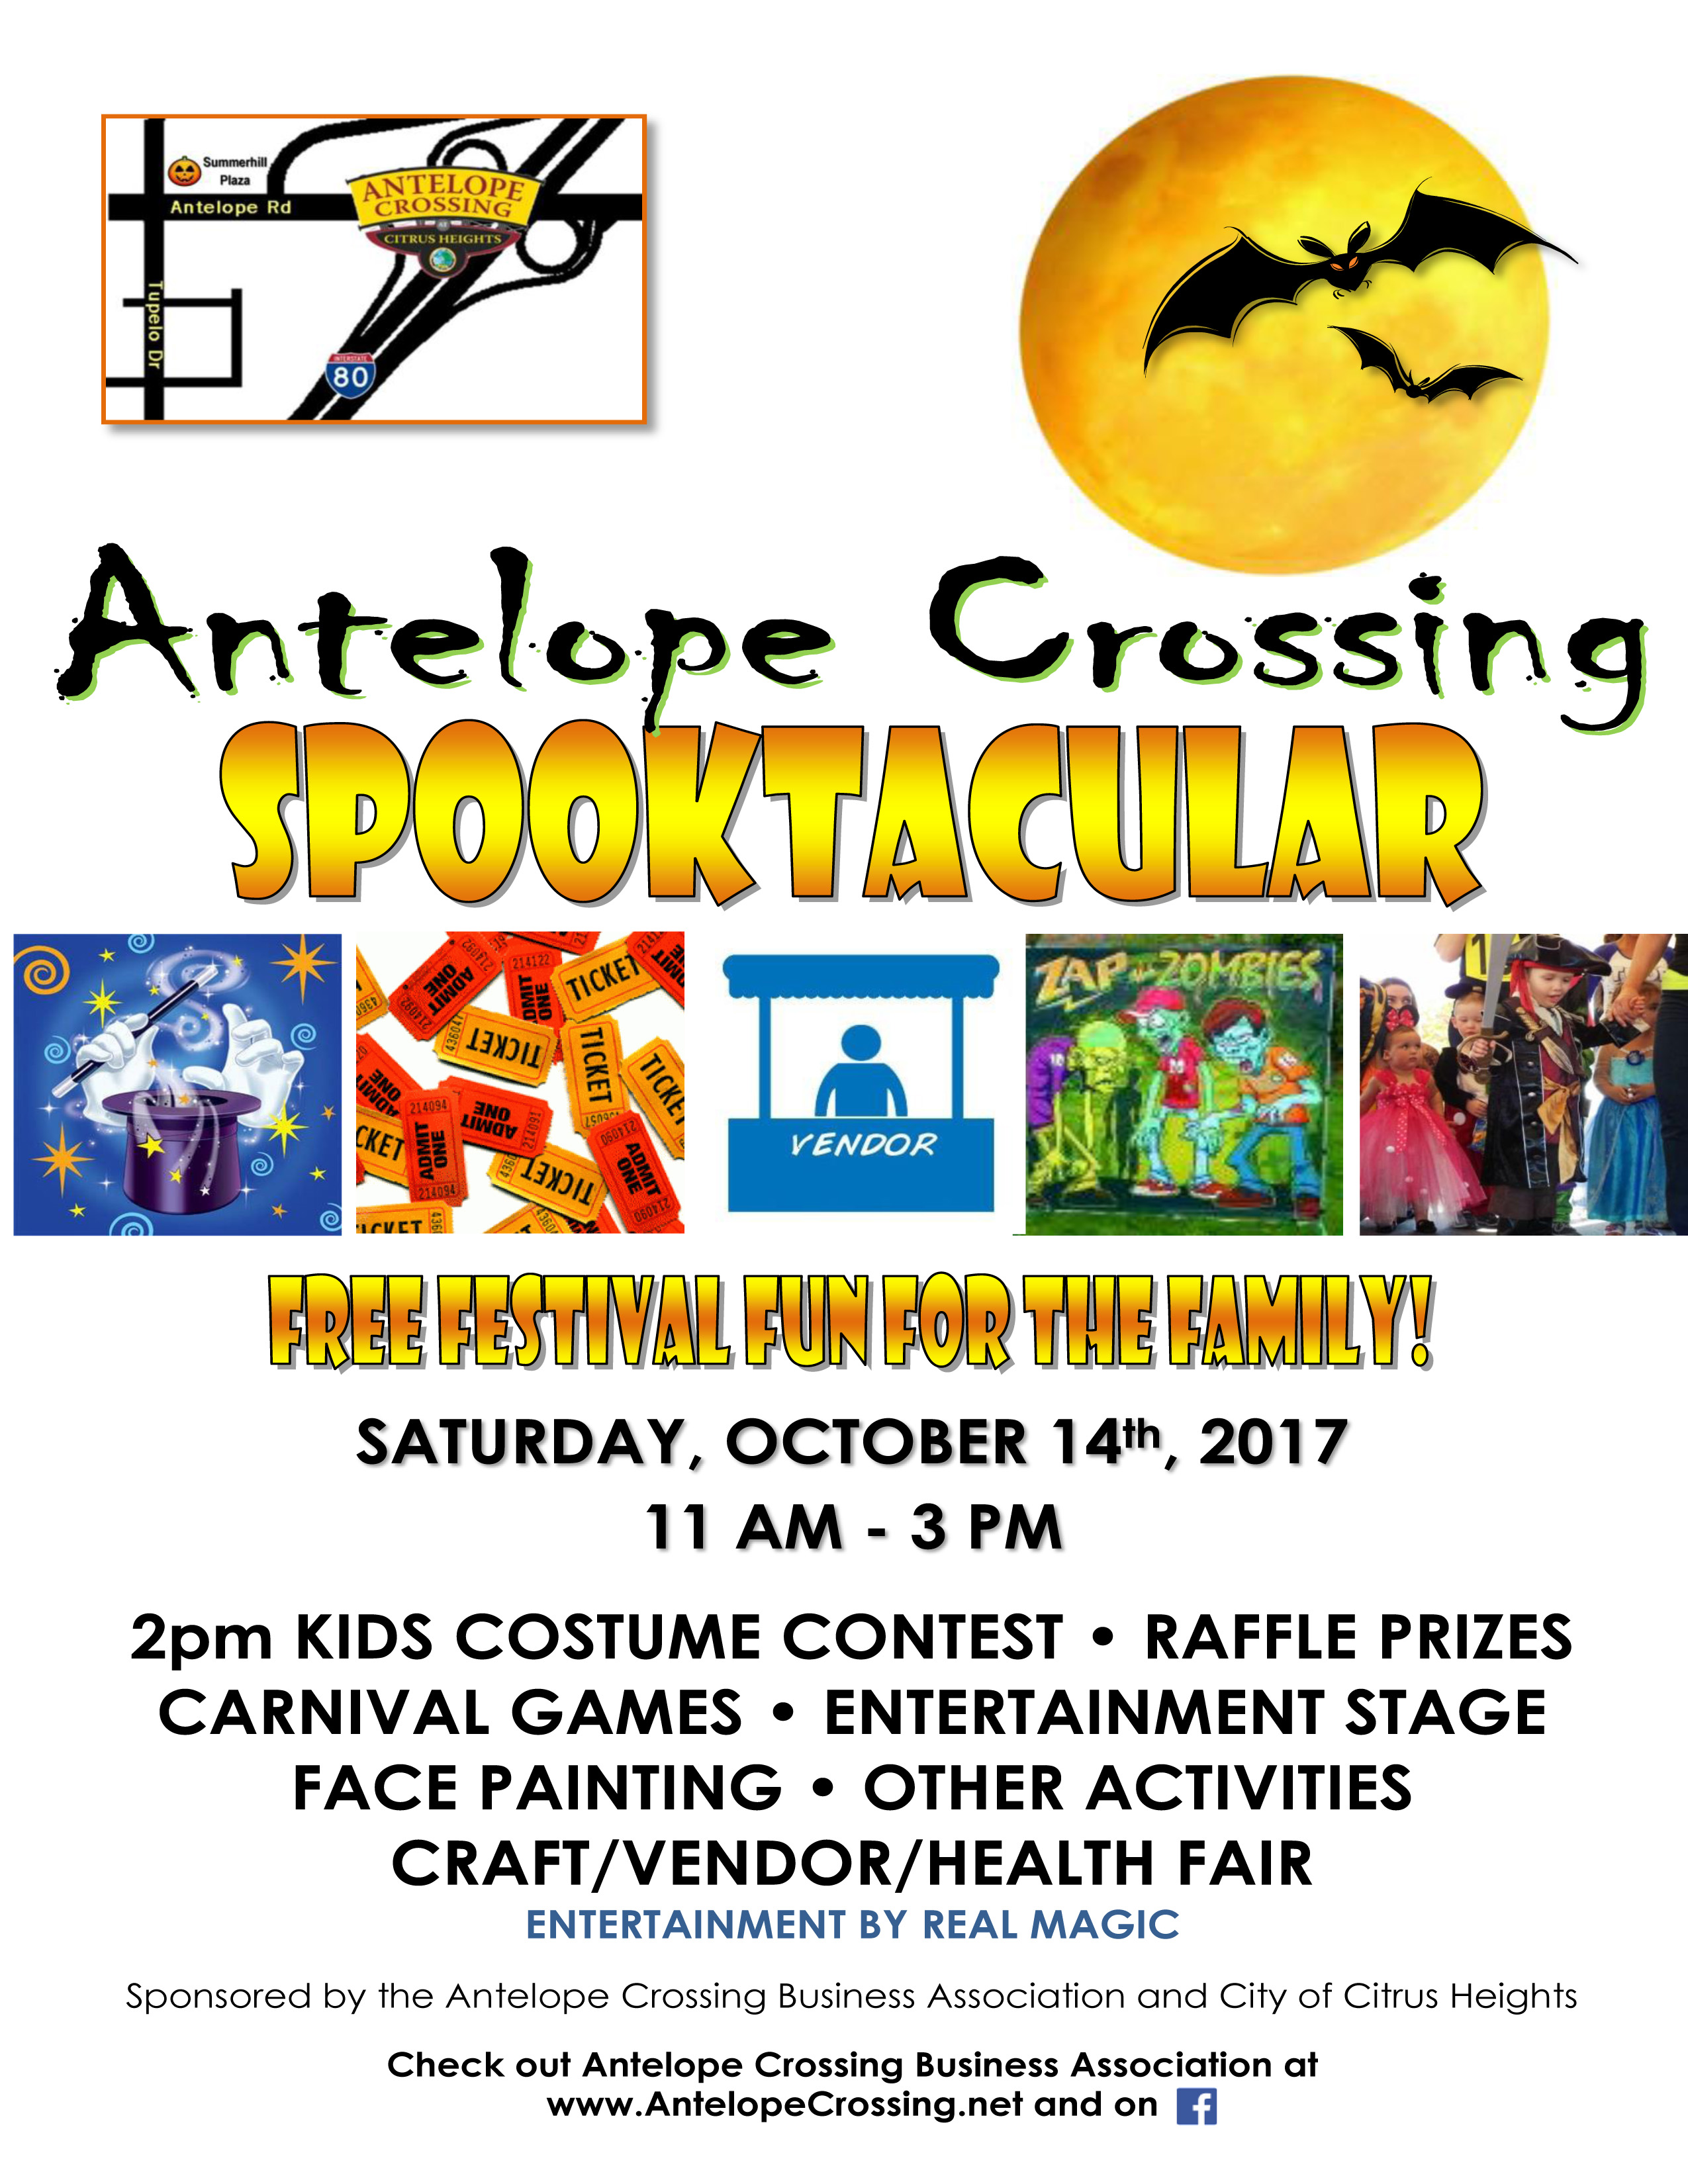 Free Halloween Events Near Citrus Heights 2020 9th Annual Antelope Crossing Spooktacular 2017   Citrus Heights